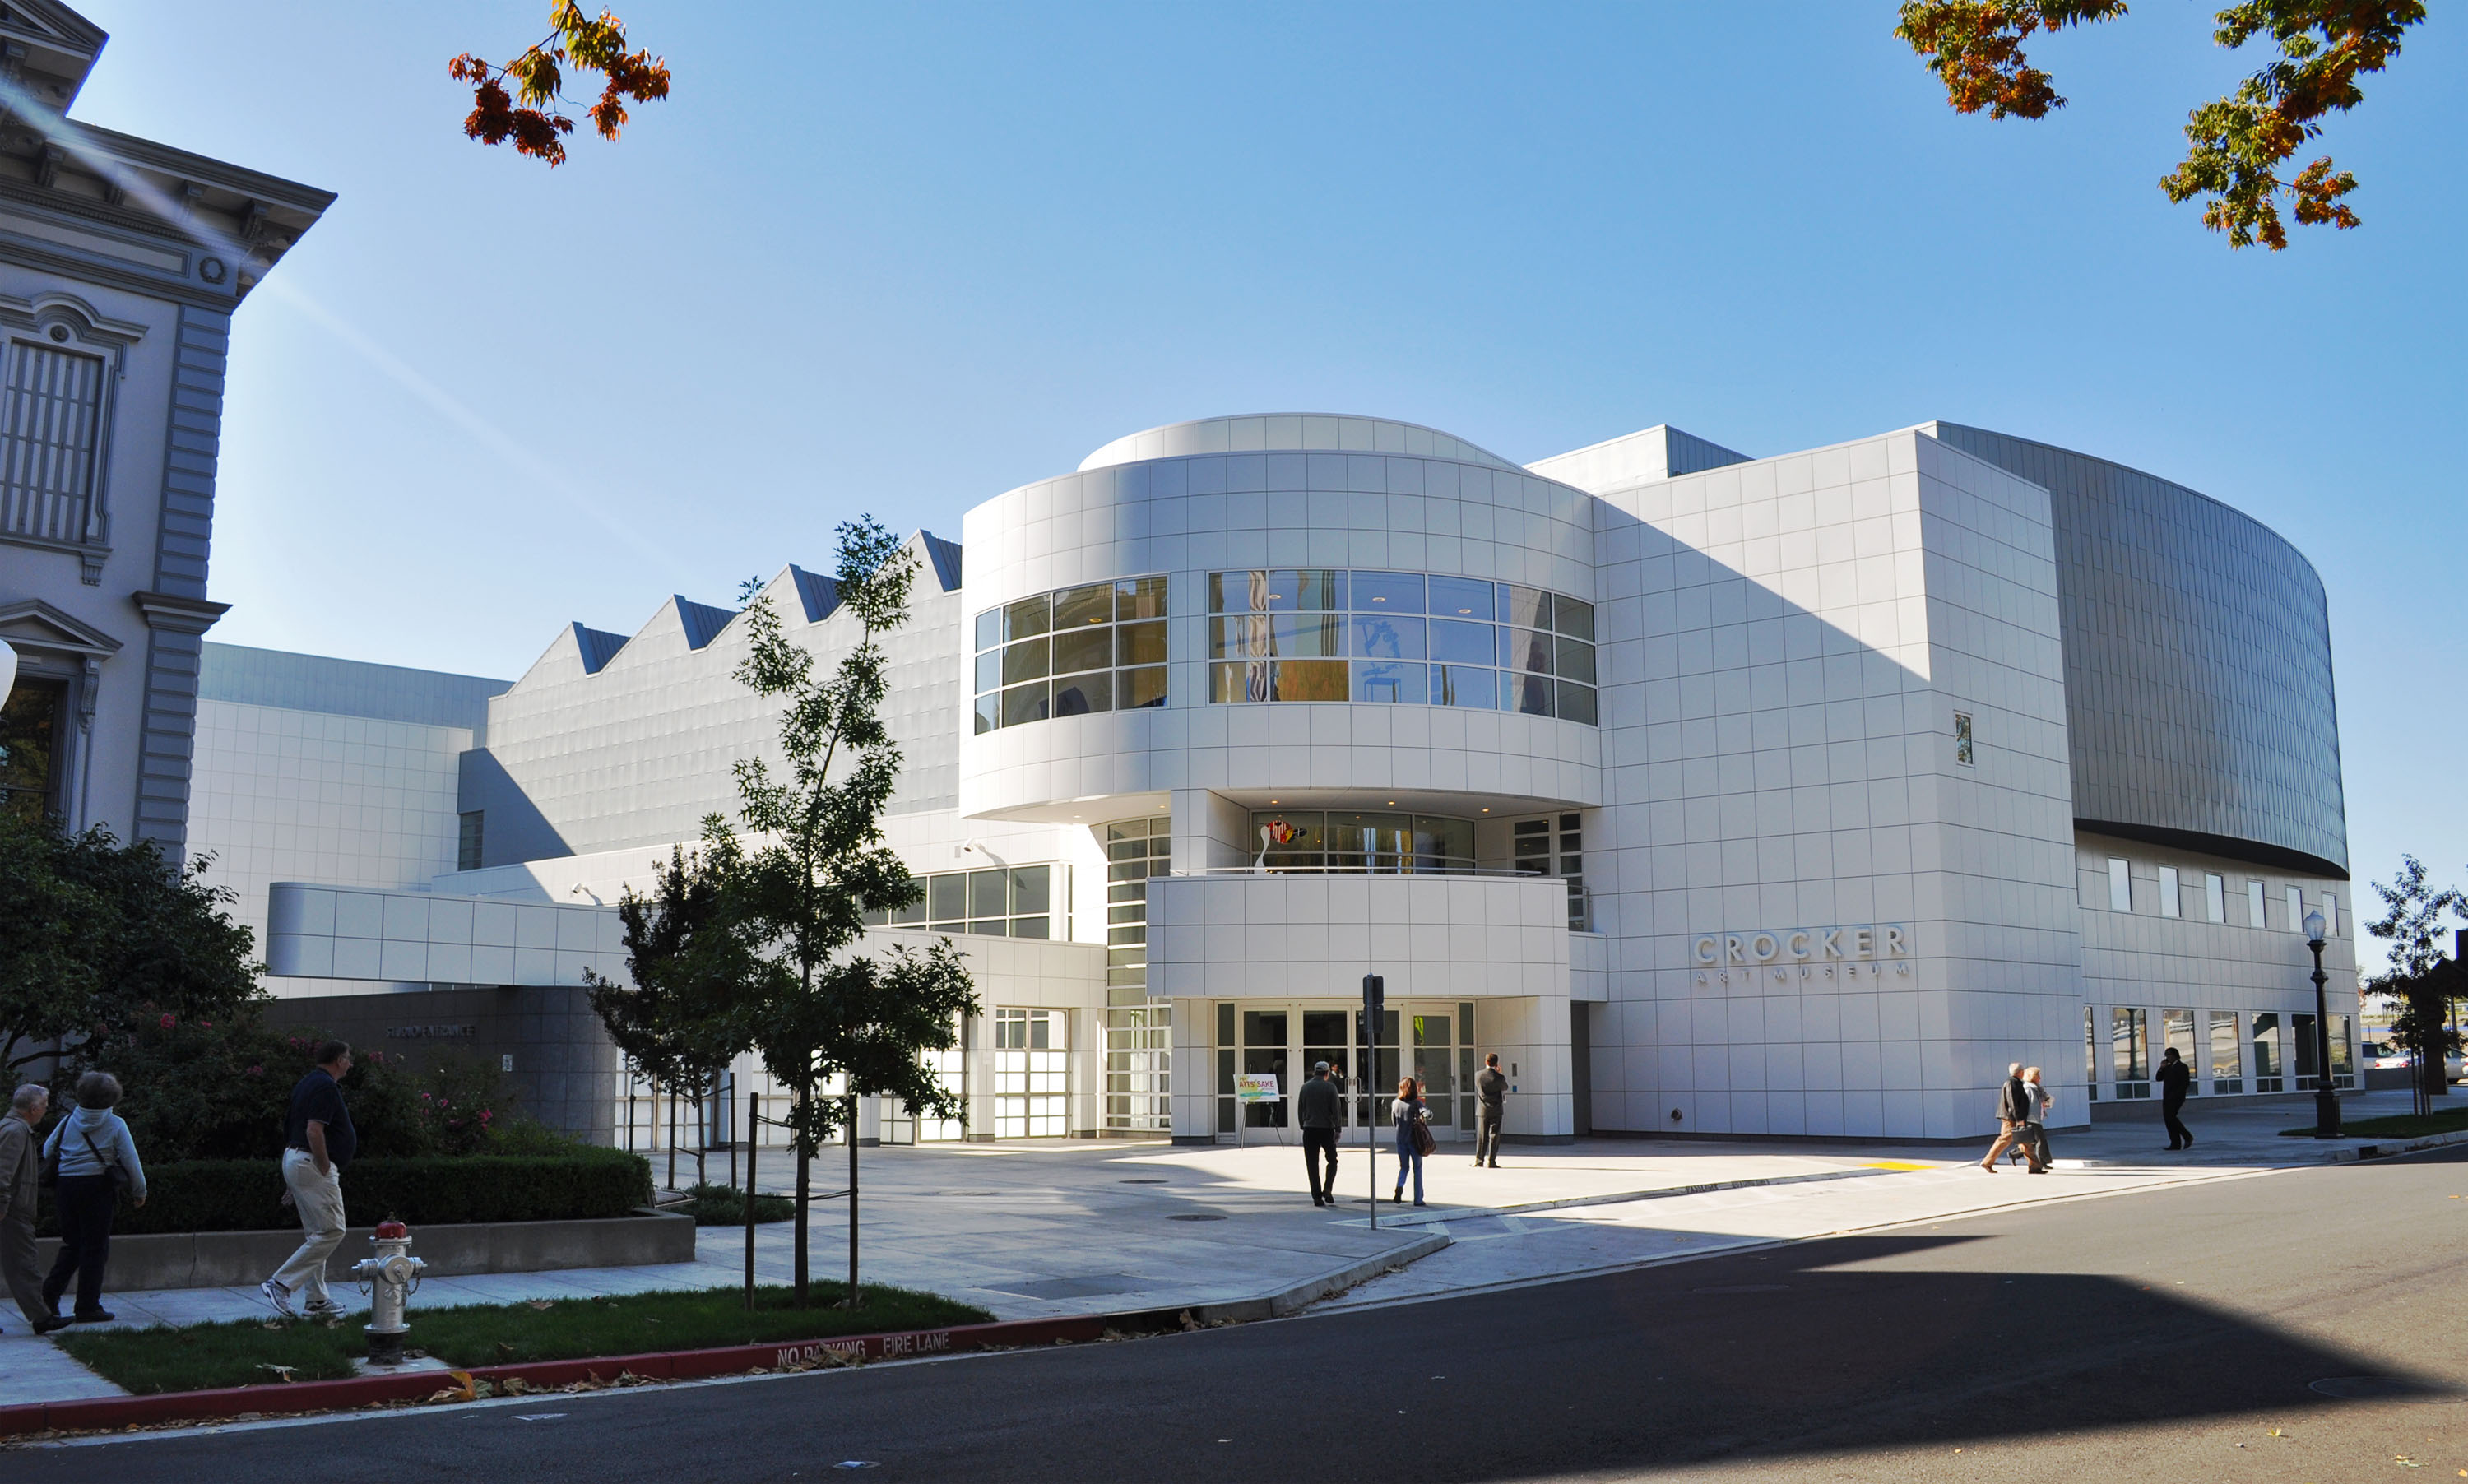 event analysis crocker art museum Description whether you're hosting a small wedding or an elaborate affair, the crocker art museum is the perfect canvas for your special event.